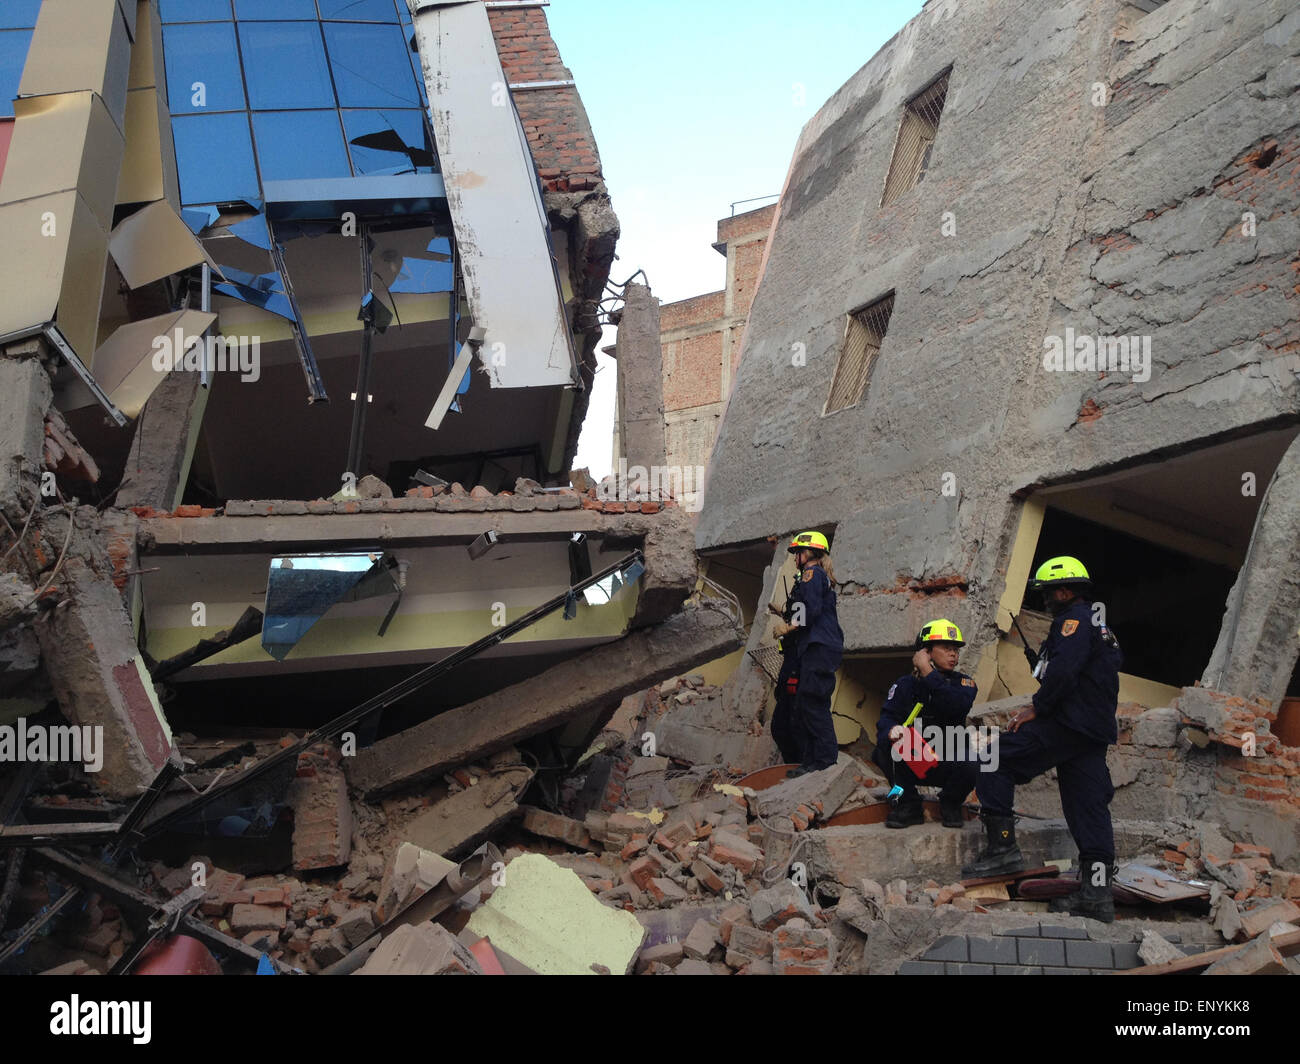 Kathmandu, Nepal. 12th May, 2015. A fresh earthquake has occurred in Nepal. Photo shows American rescuers today Stock Photo